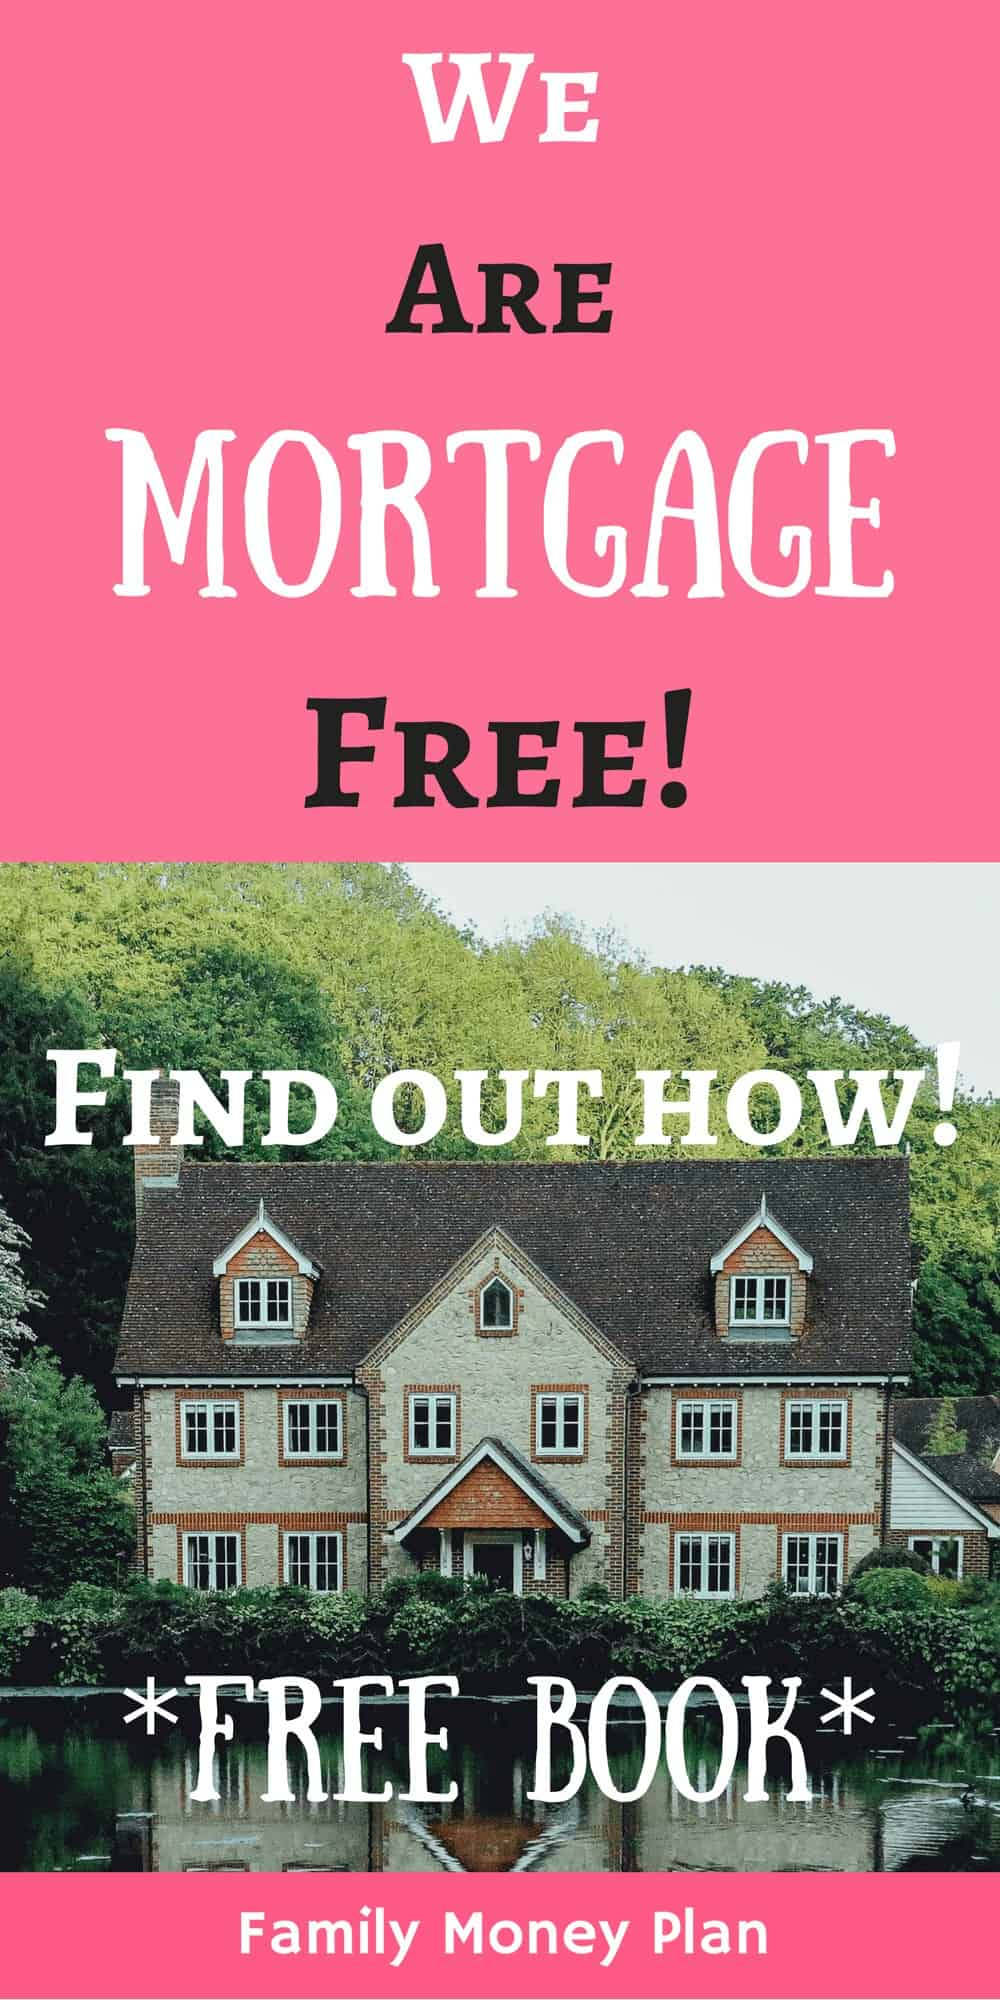 Mortgage freedom? Sound like it's too far away. Not always... there are many things you can do to become mortgage free quicker than 30 years